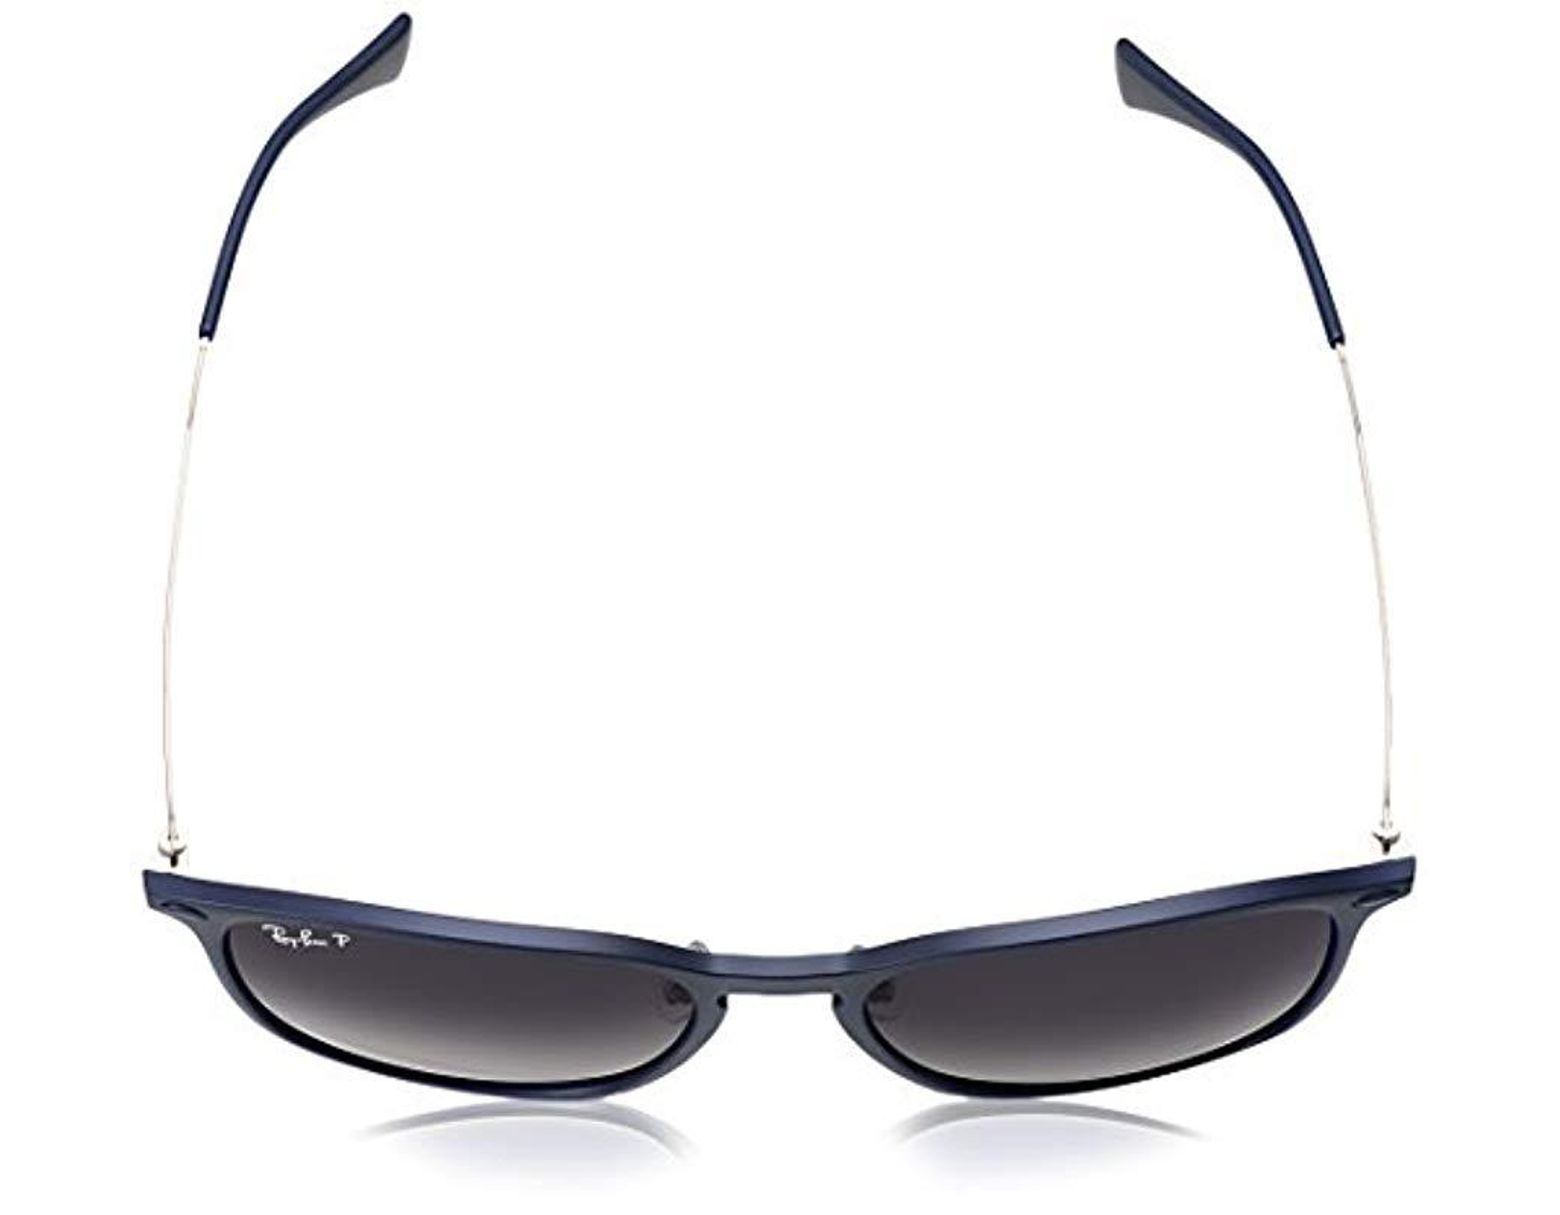 7889a1f1309a Ray Ban 4147 3 1 5 189